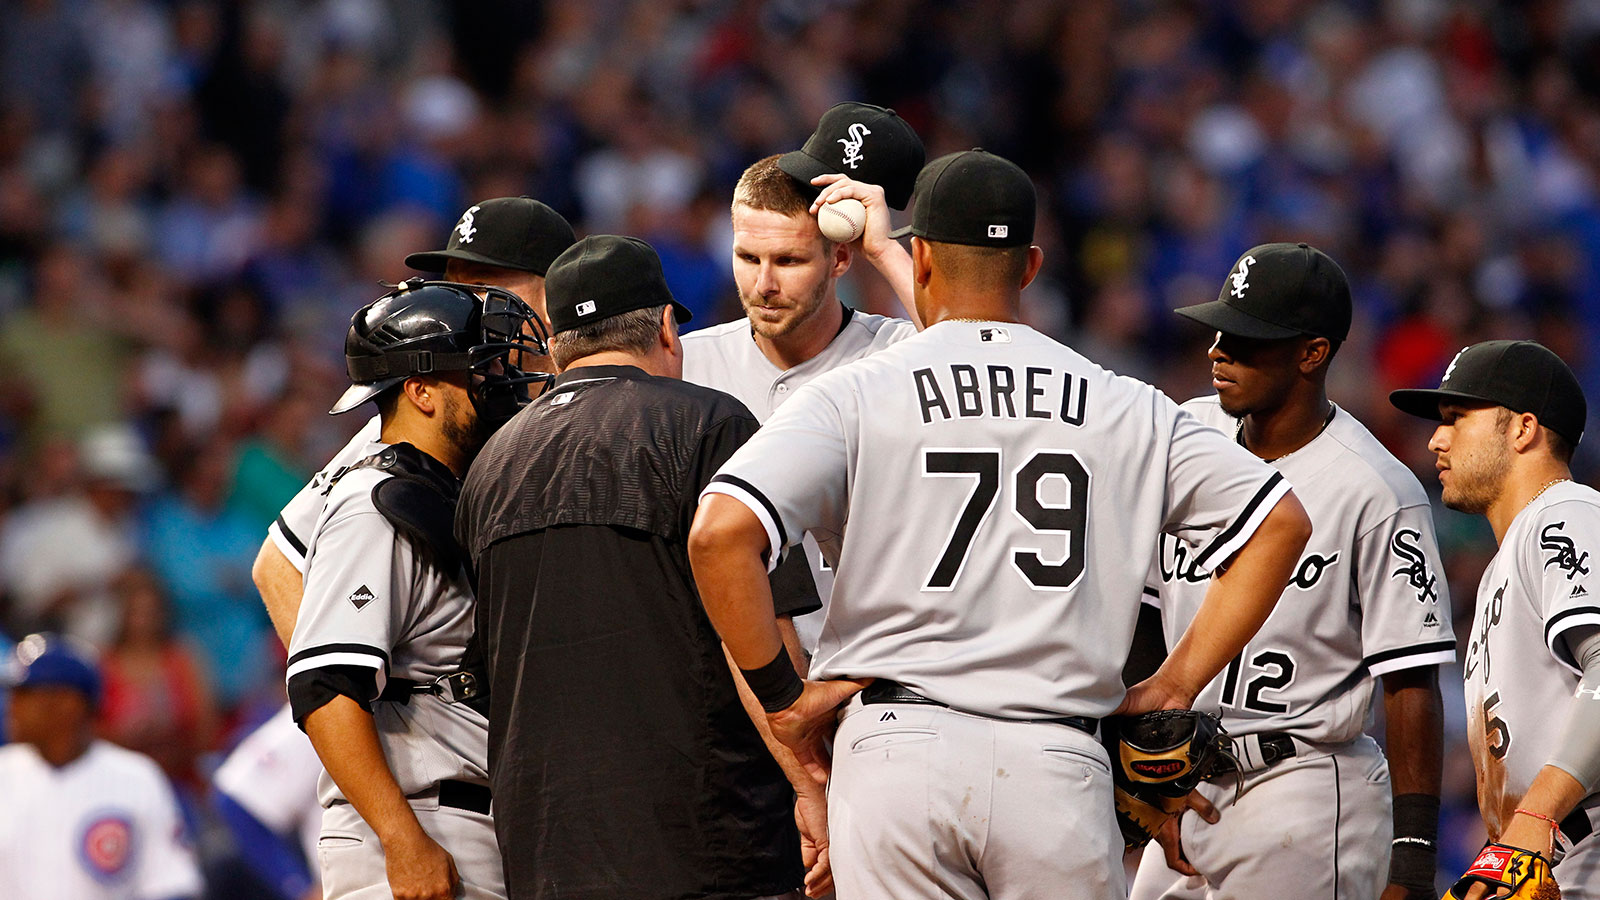 Chris Sale's return spoiled by Cubs, who get first save from Aroldis Chapman